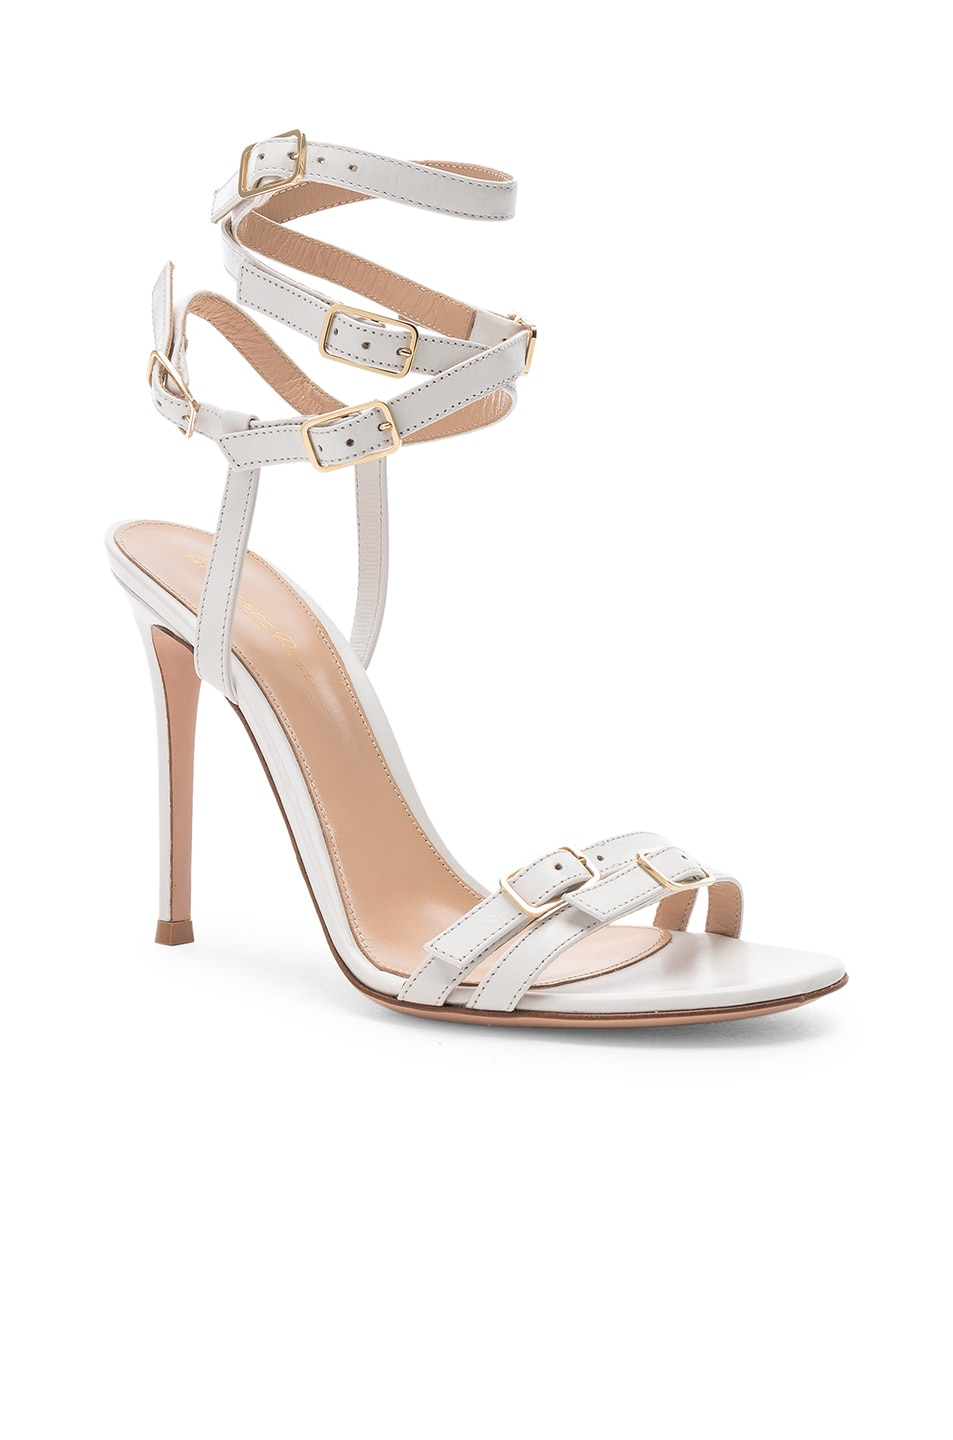 Image 2 of Gianvito Rossi Cassandra Buckle Strappy Heel in White